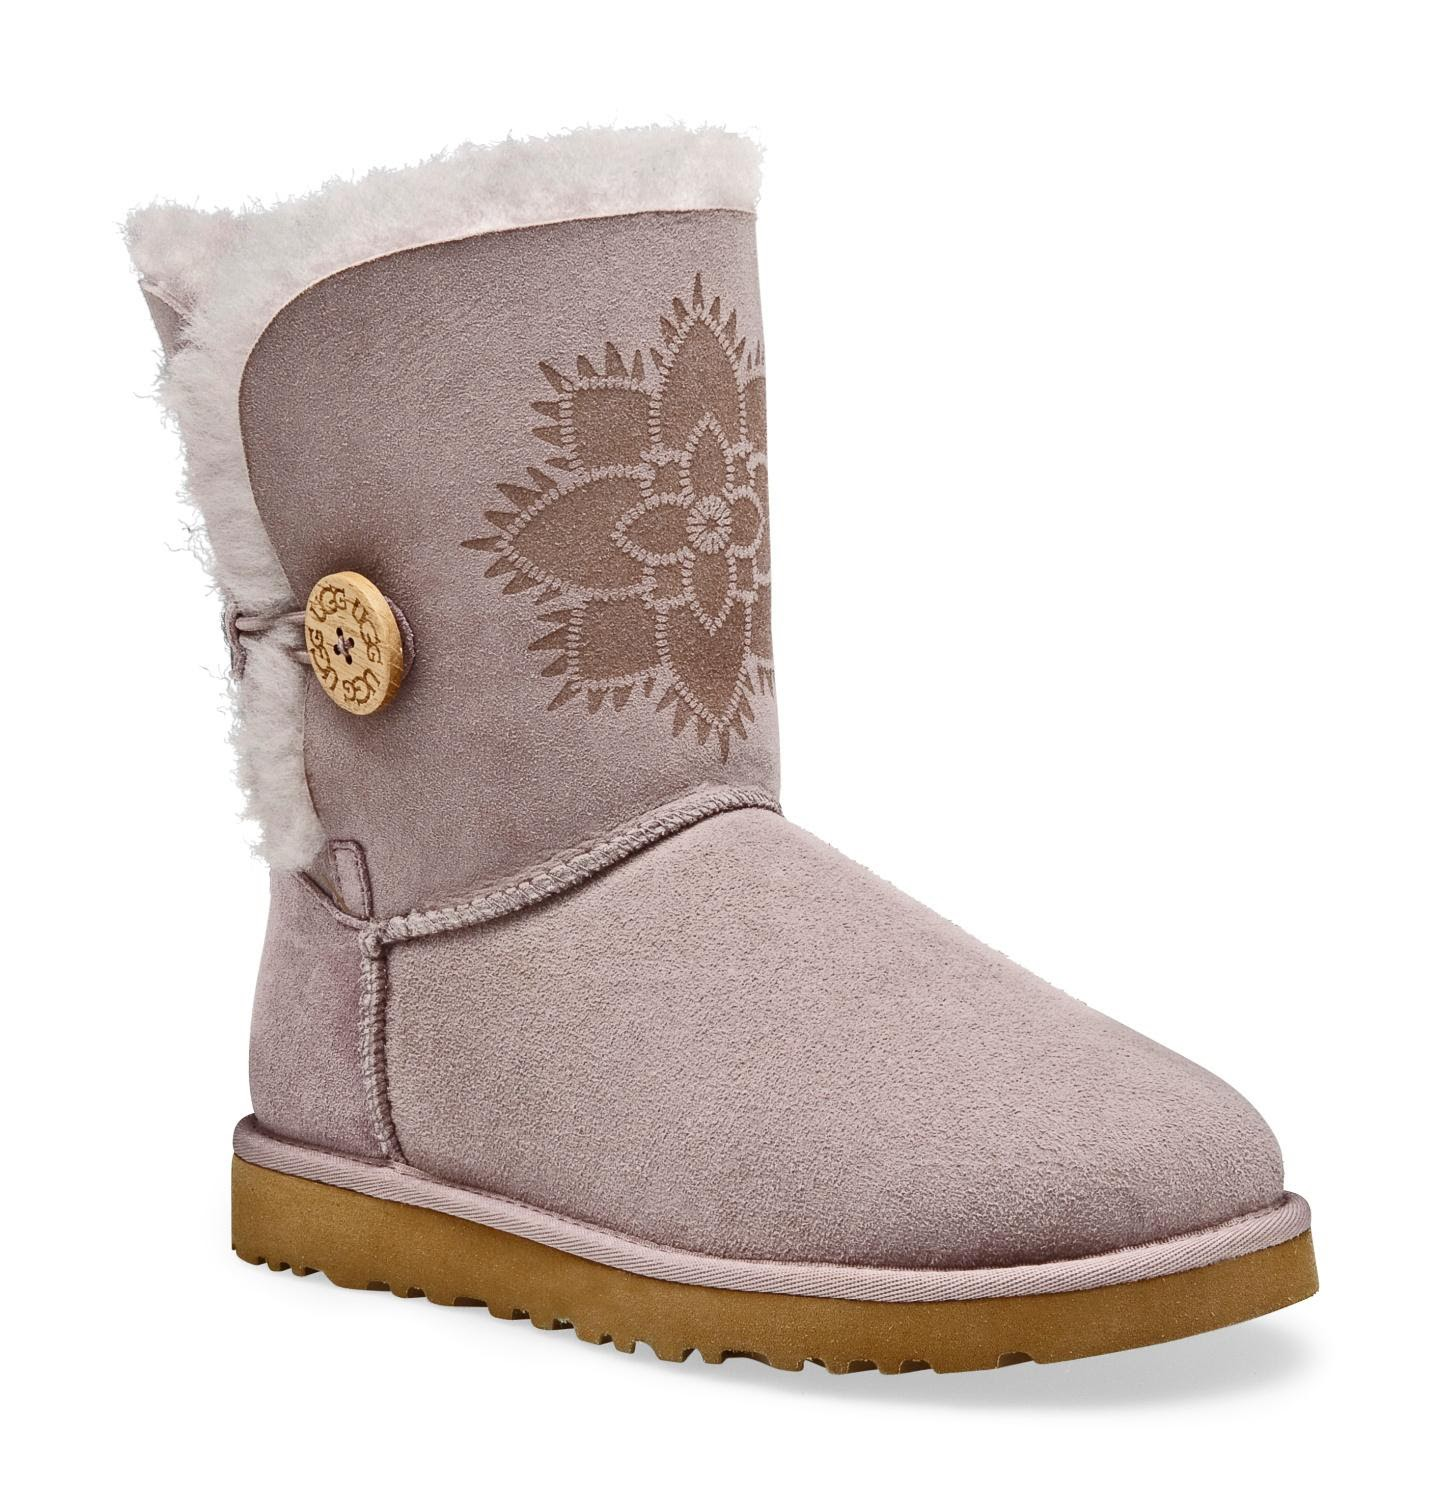 what is the style of ugg boots called